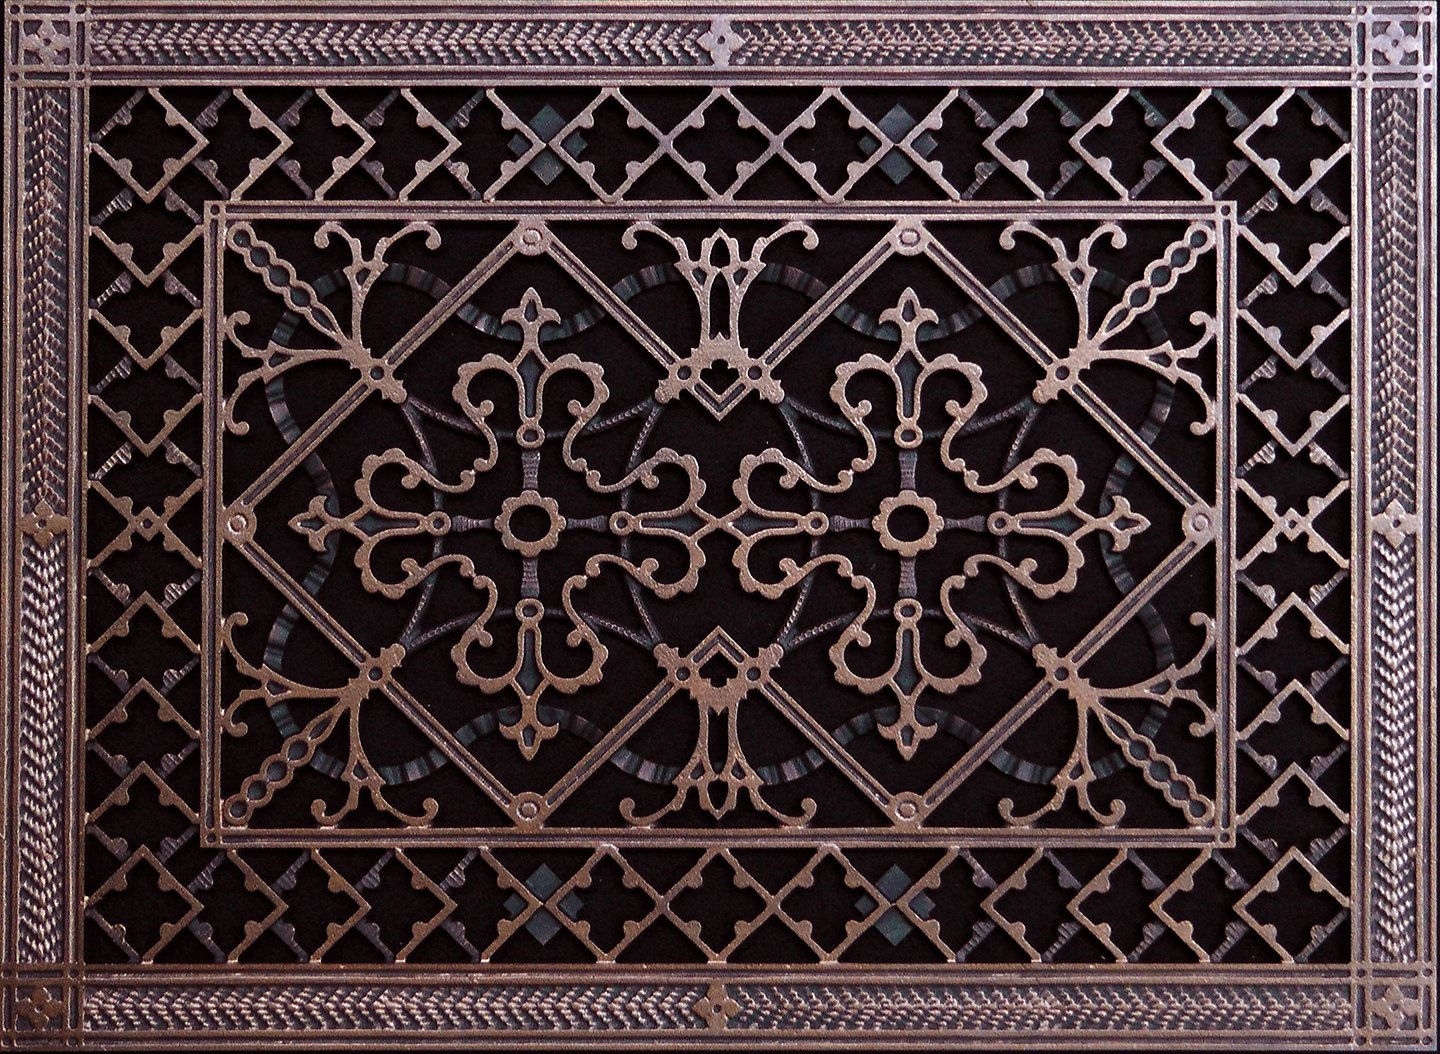 Decorative Return Air Vent Cover Decorative Grille Vent Cover Or Return Register Made Of